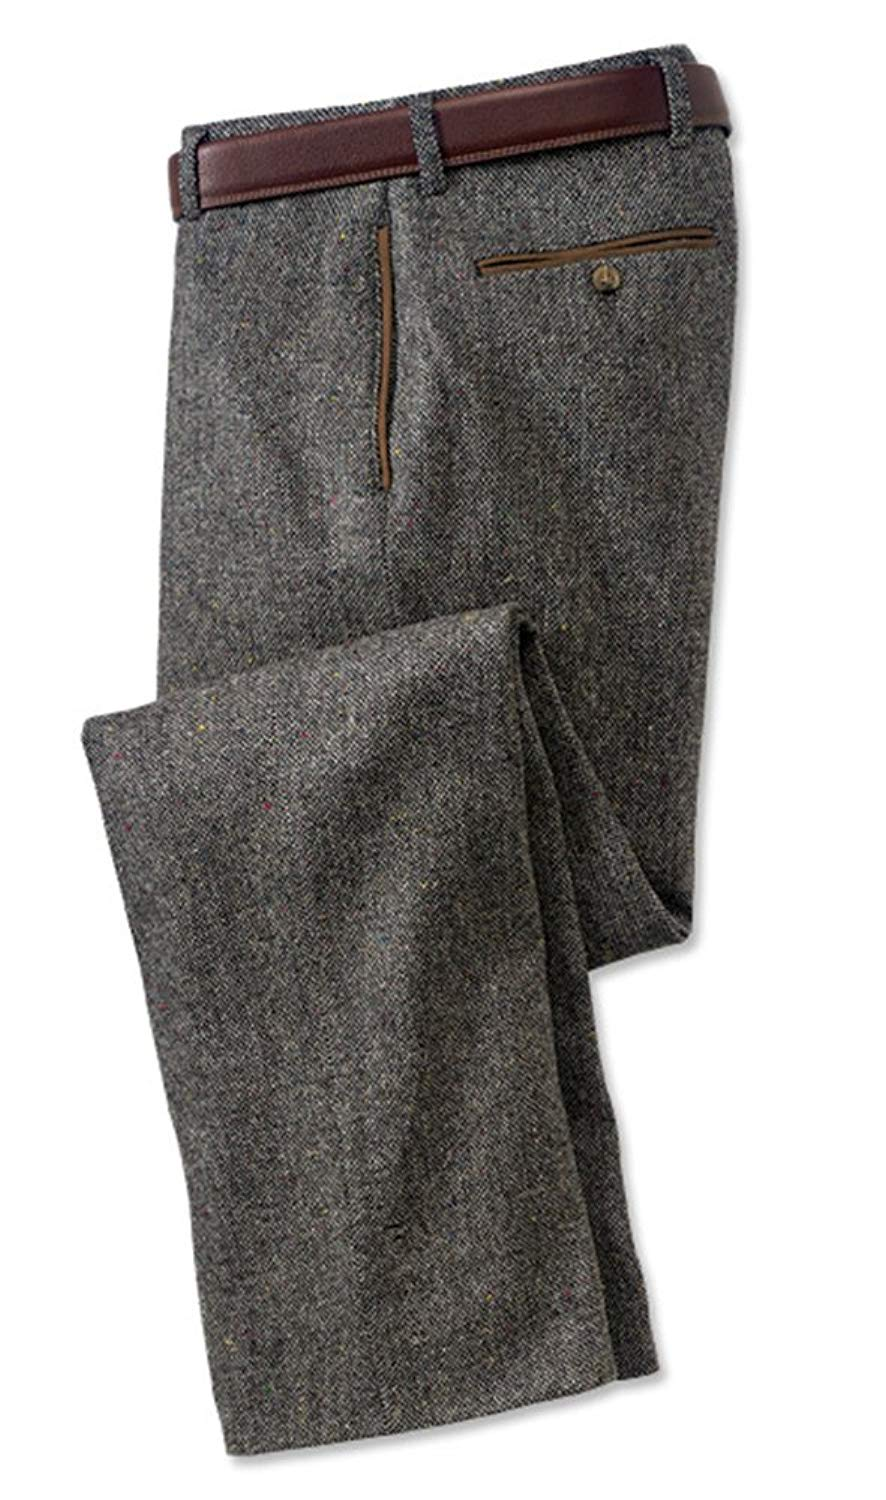 deb222361e716 Get Quotations · Orvis County Donegal Tweed Pants